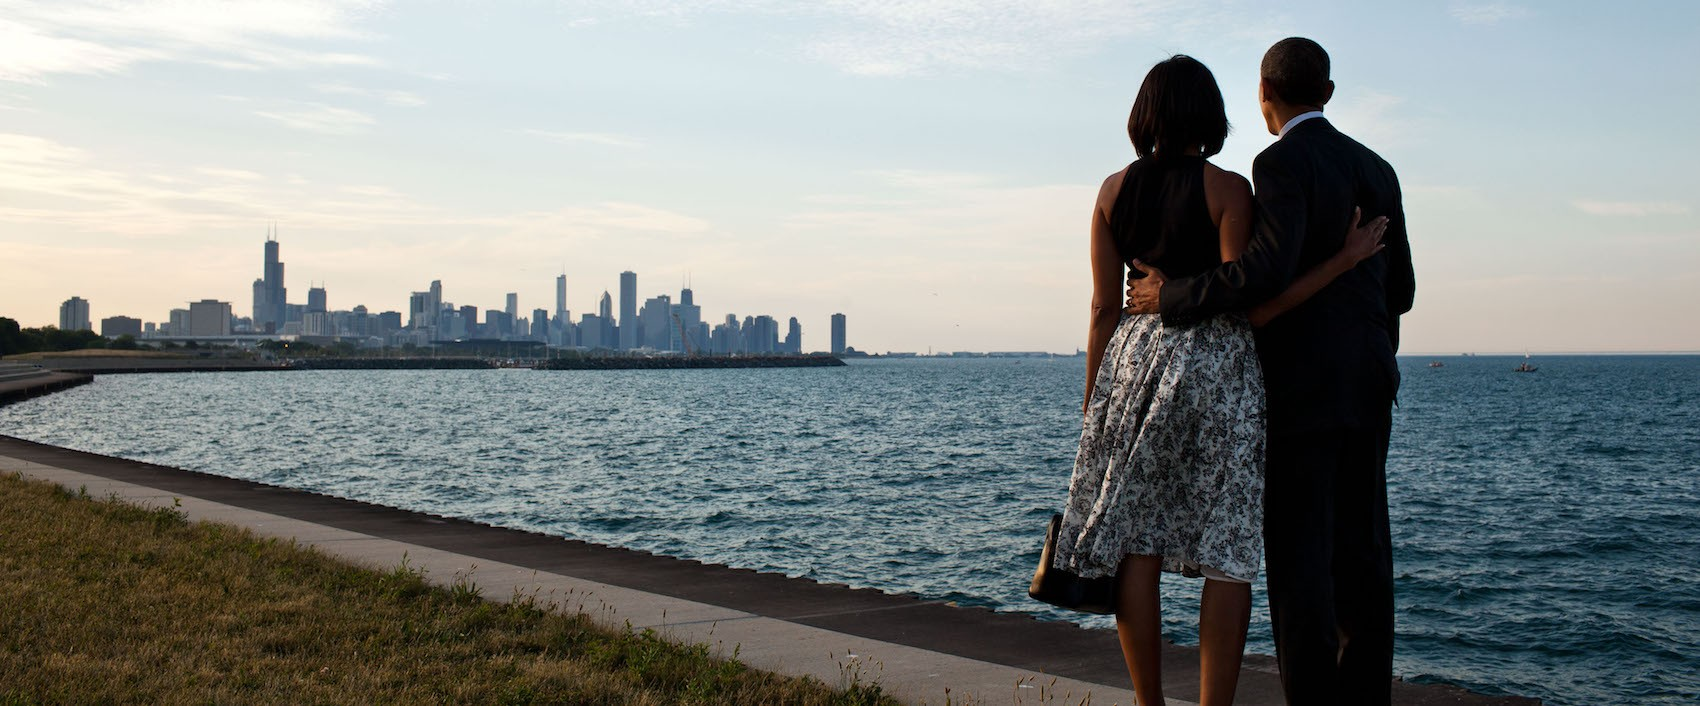 President Barack Obama and First Lady Michelle Obama look out at the Chicago, Ill., skyline, June 15, 2012.